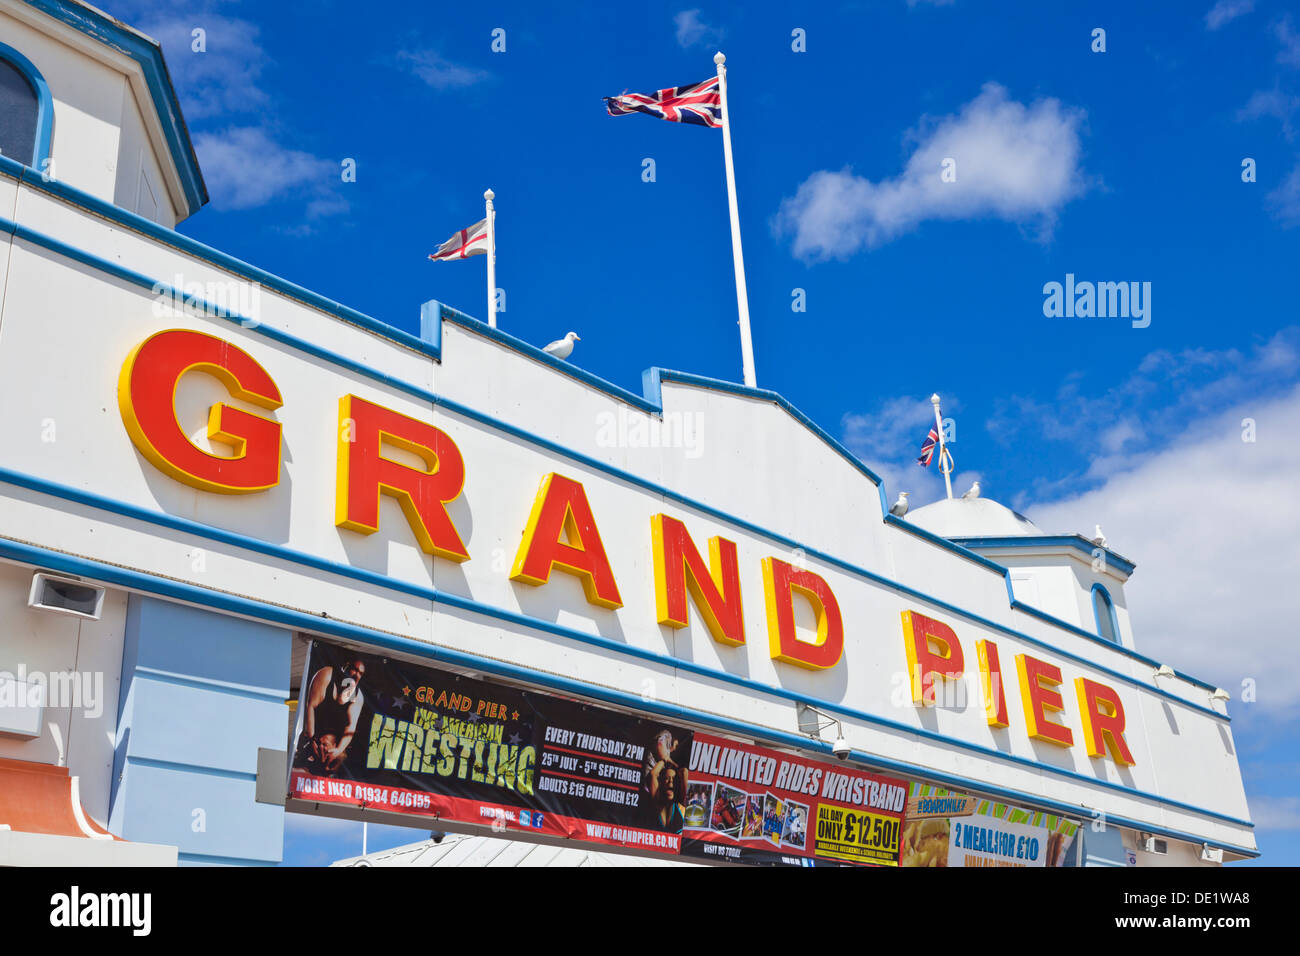 Weston Super Mare Grand Pier sign Weston-Super-Mare Somerset England UK GB EU Europe - Stock Image